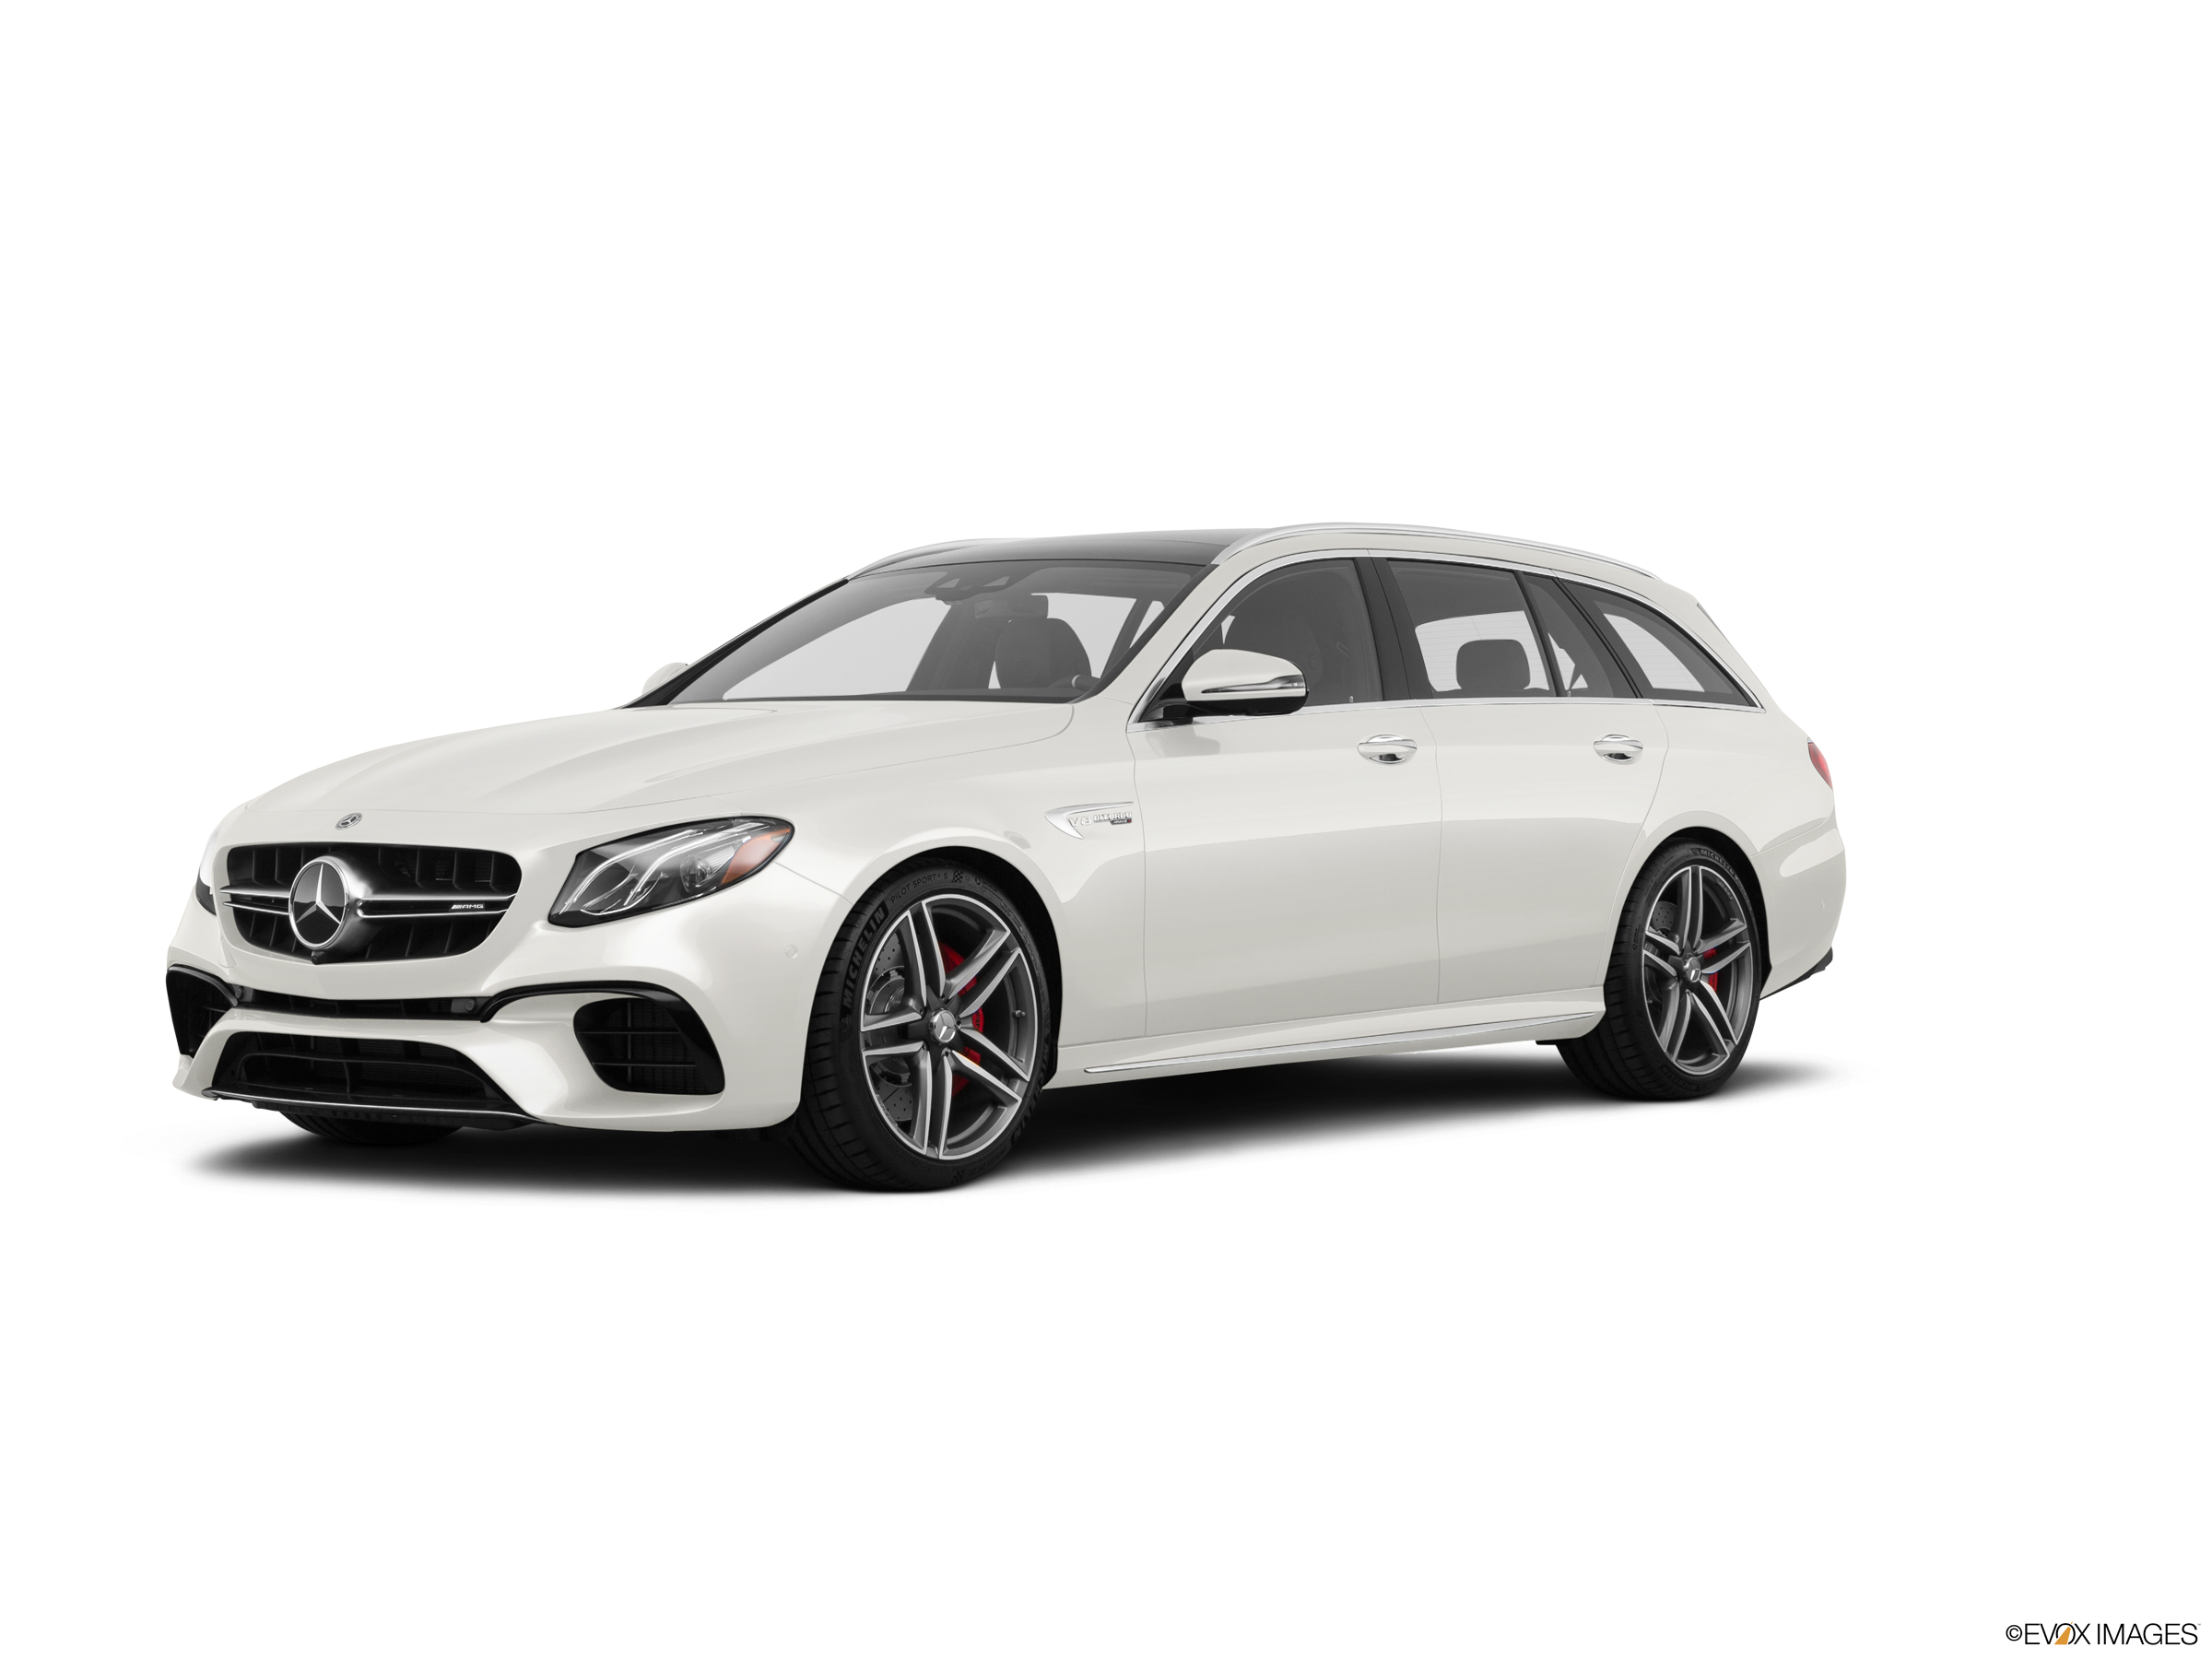 Most Popular Wagons of 2018 - 2018 Mercedes-Benz Mercedes-AMG E-Class